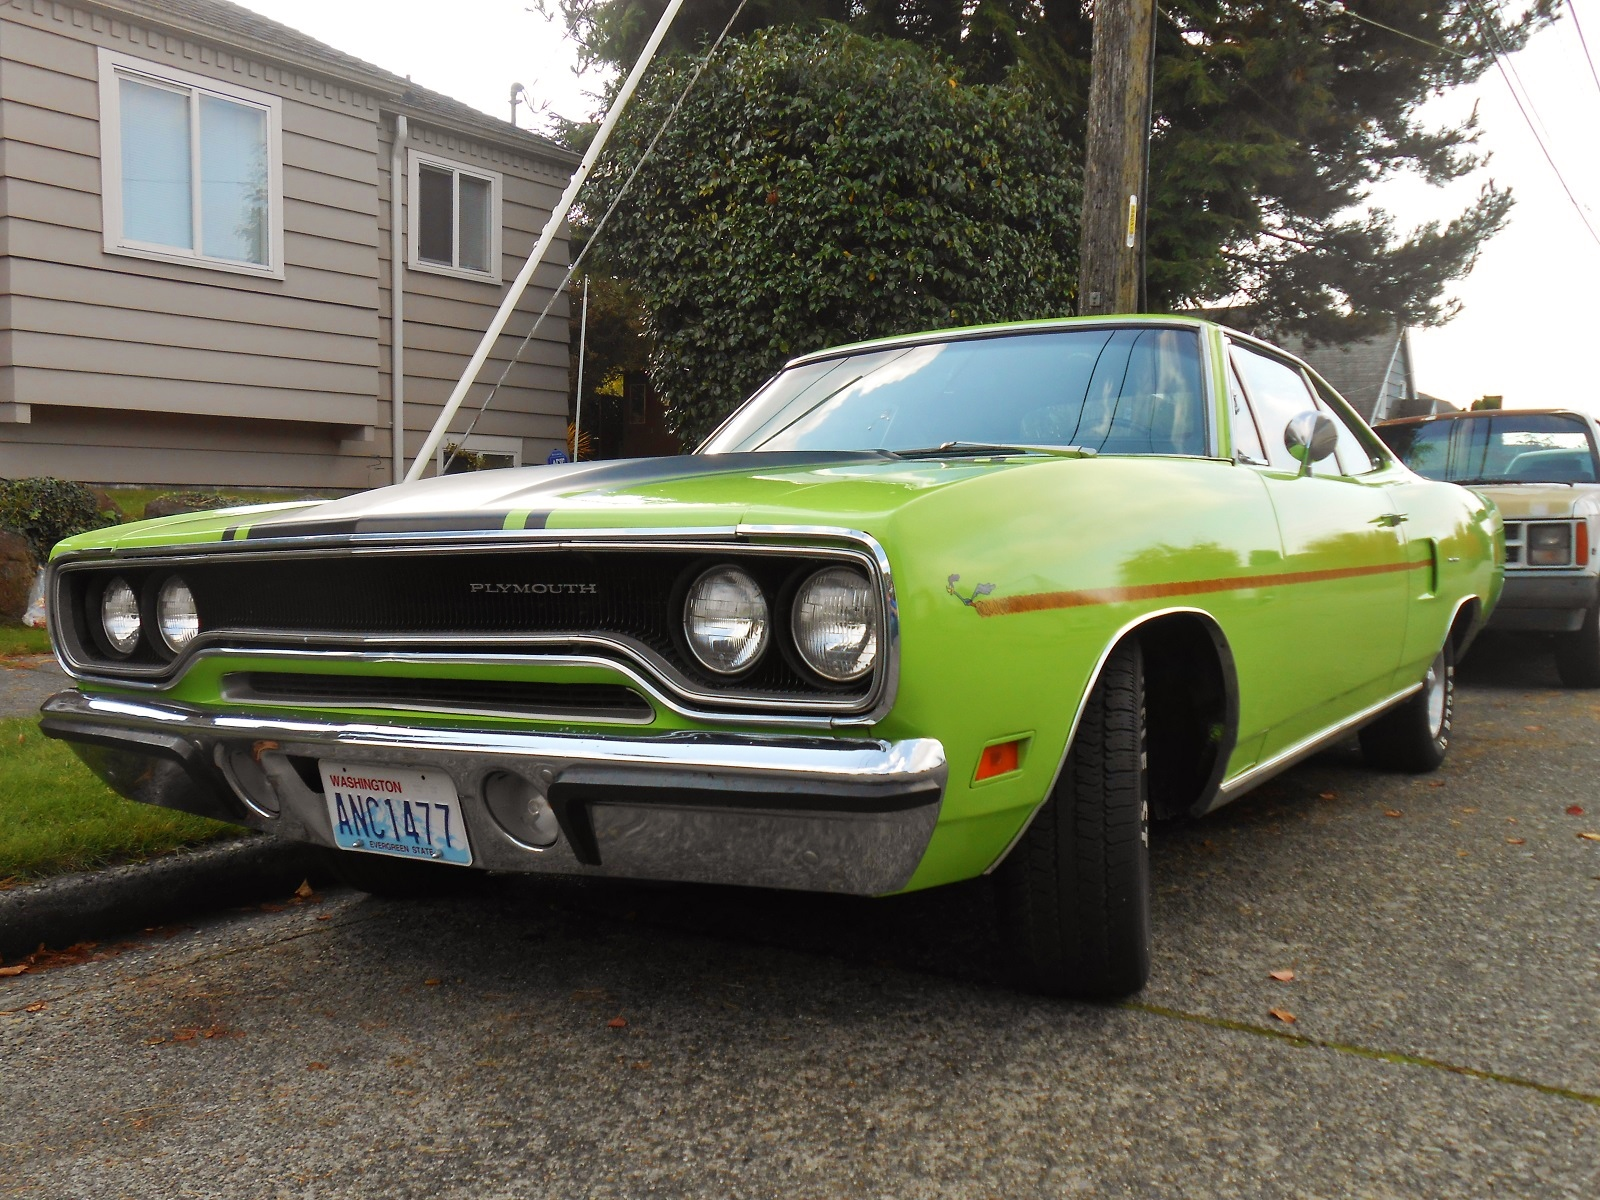 seattle 39 s parked cars 1970 plymouth road runner. Black Bedroom Furniture Sets. Home Design Ideas